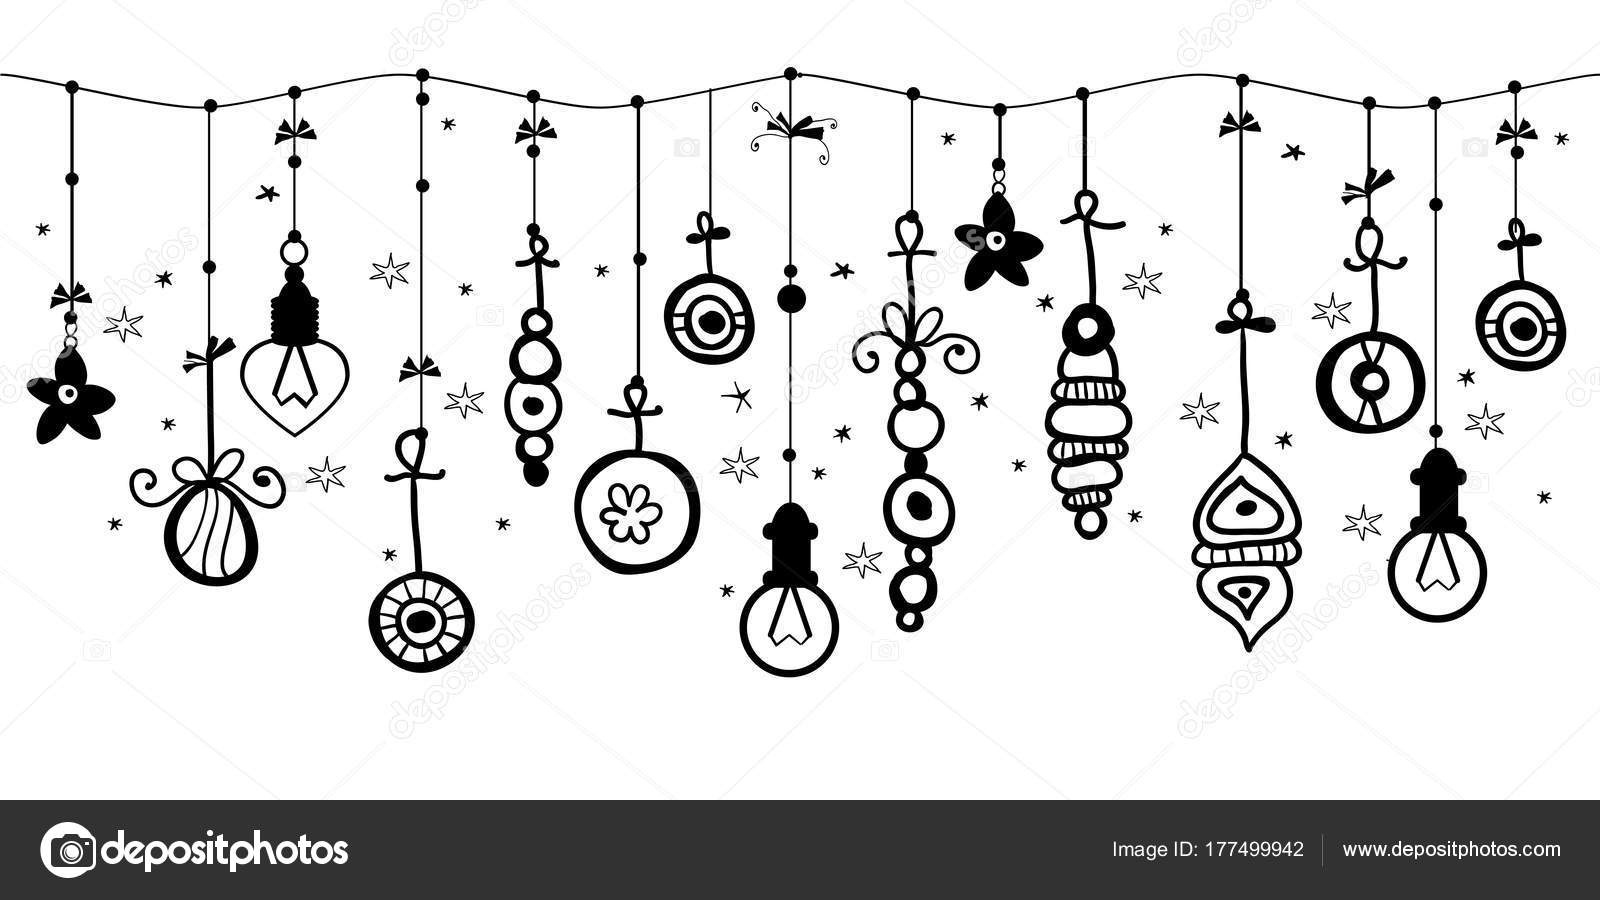 Christmas Ornament Border Clipart Black And White.